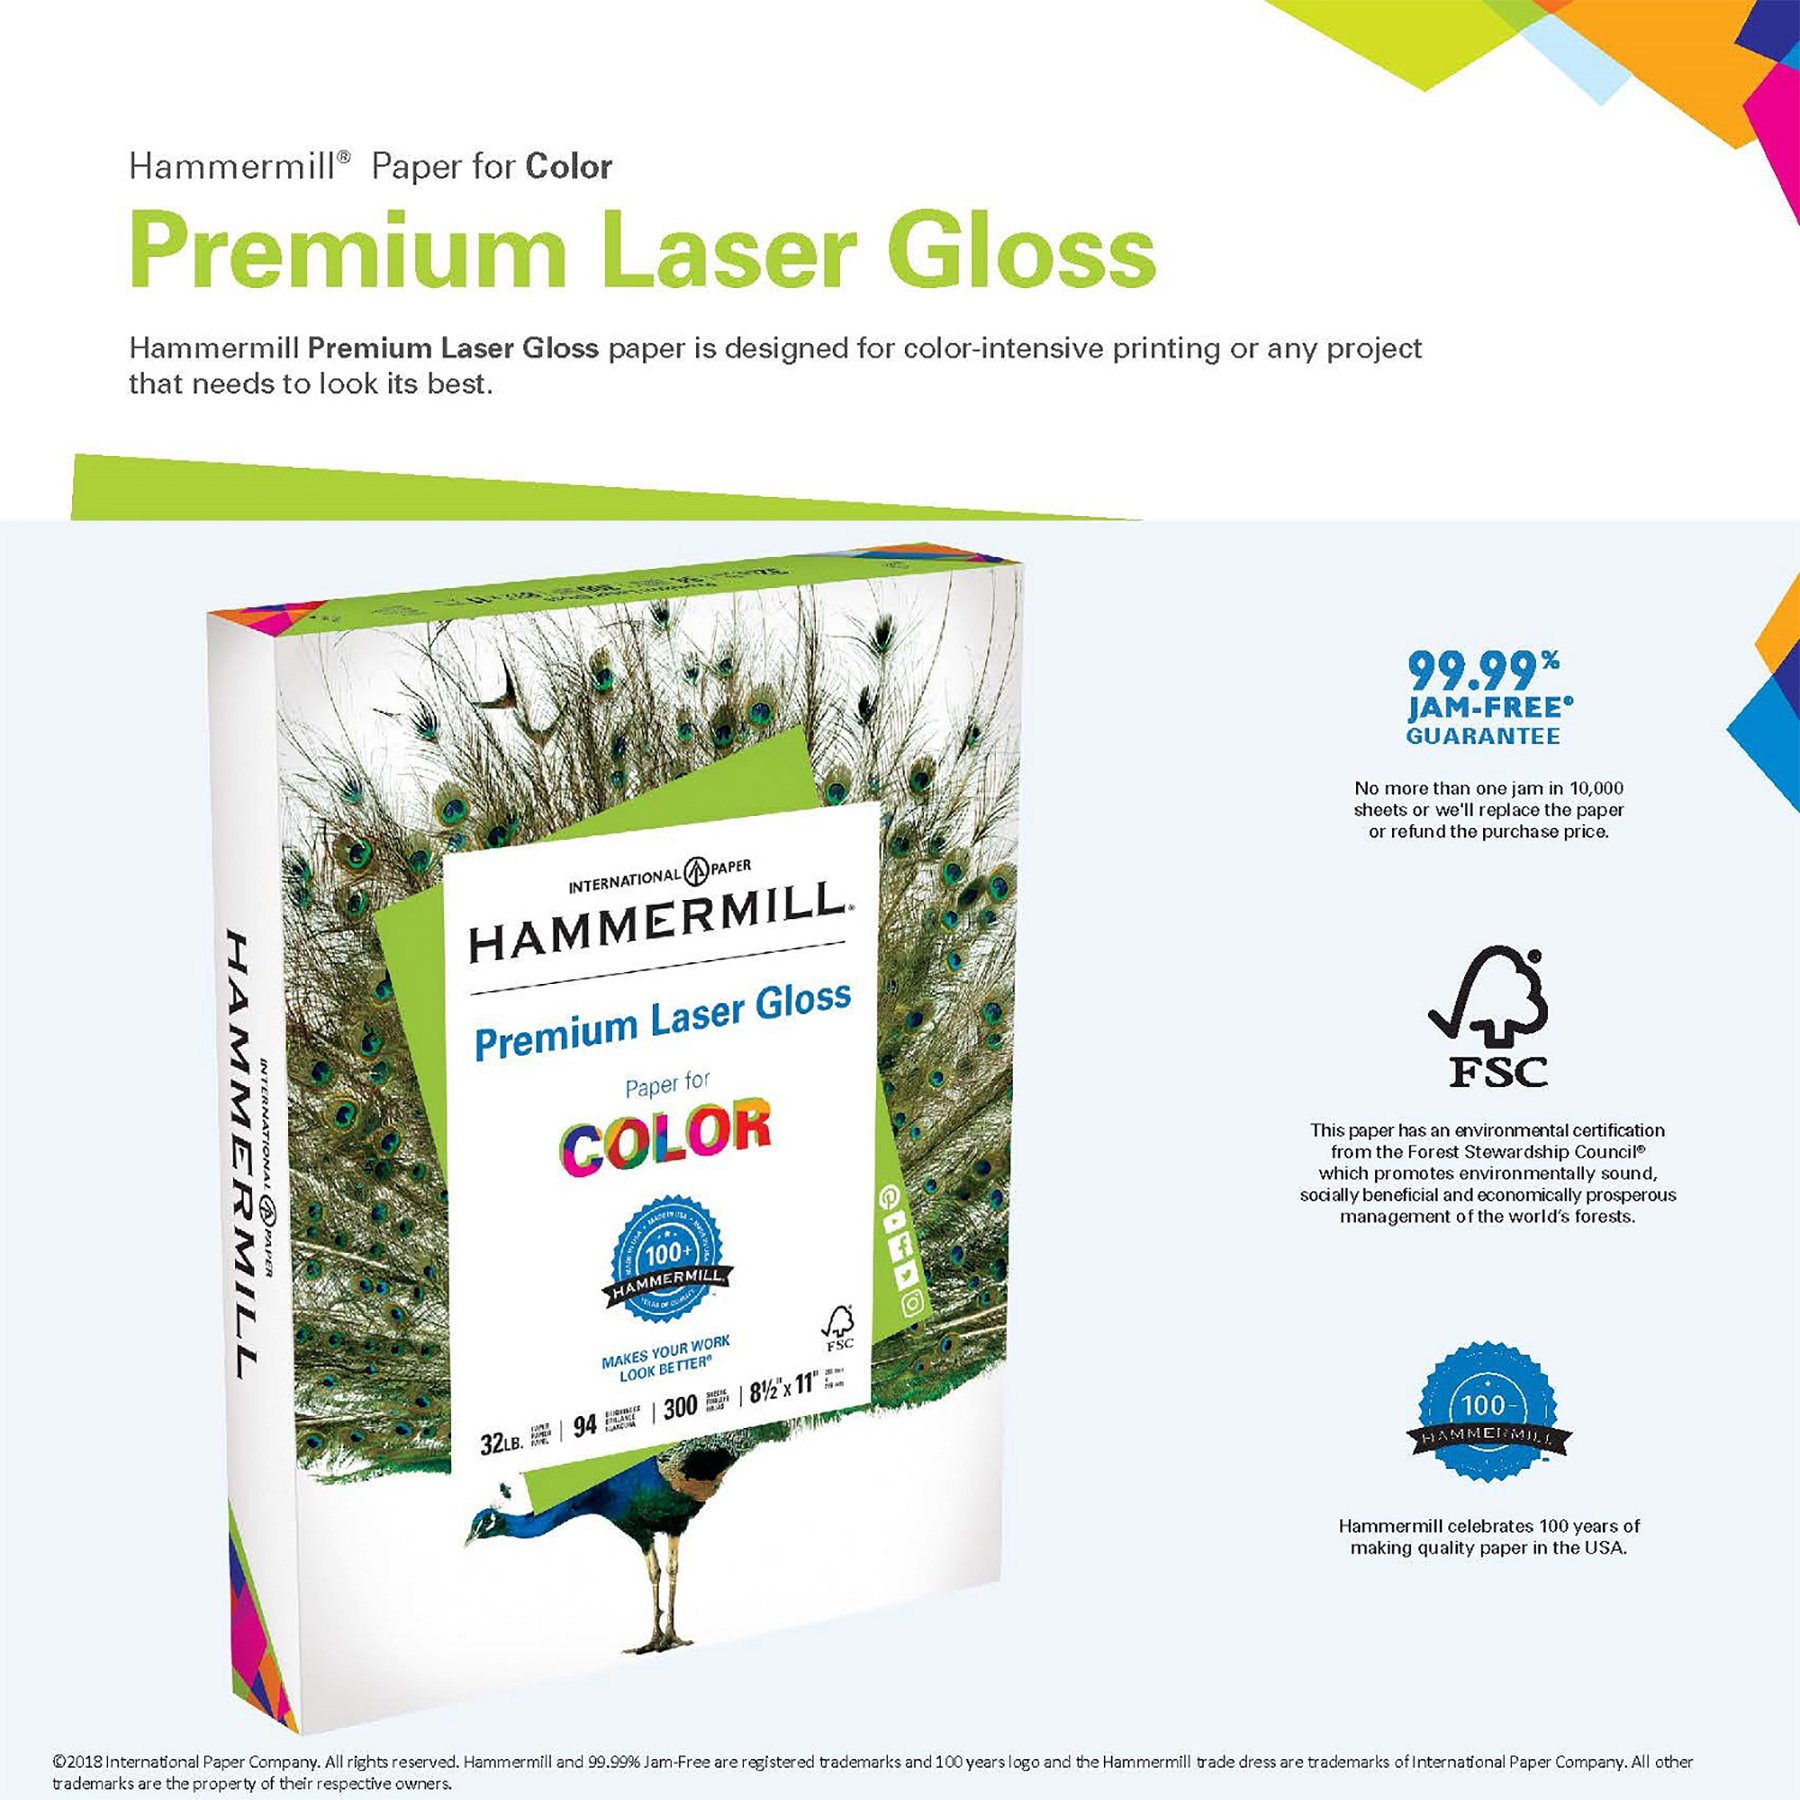 Hammermill Paper, Premium Laser Gloss Paper, 8.5 x 11 Paper, Letter Paper, 32lb Paper, 94 Bright, 1 Pack / 300 Sheets (163110R) Acid Free Paper by Hammermill (Image #3)